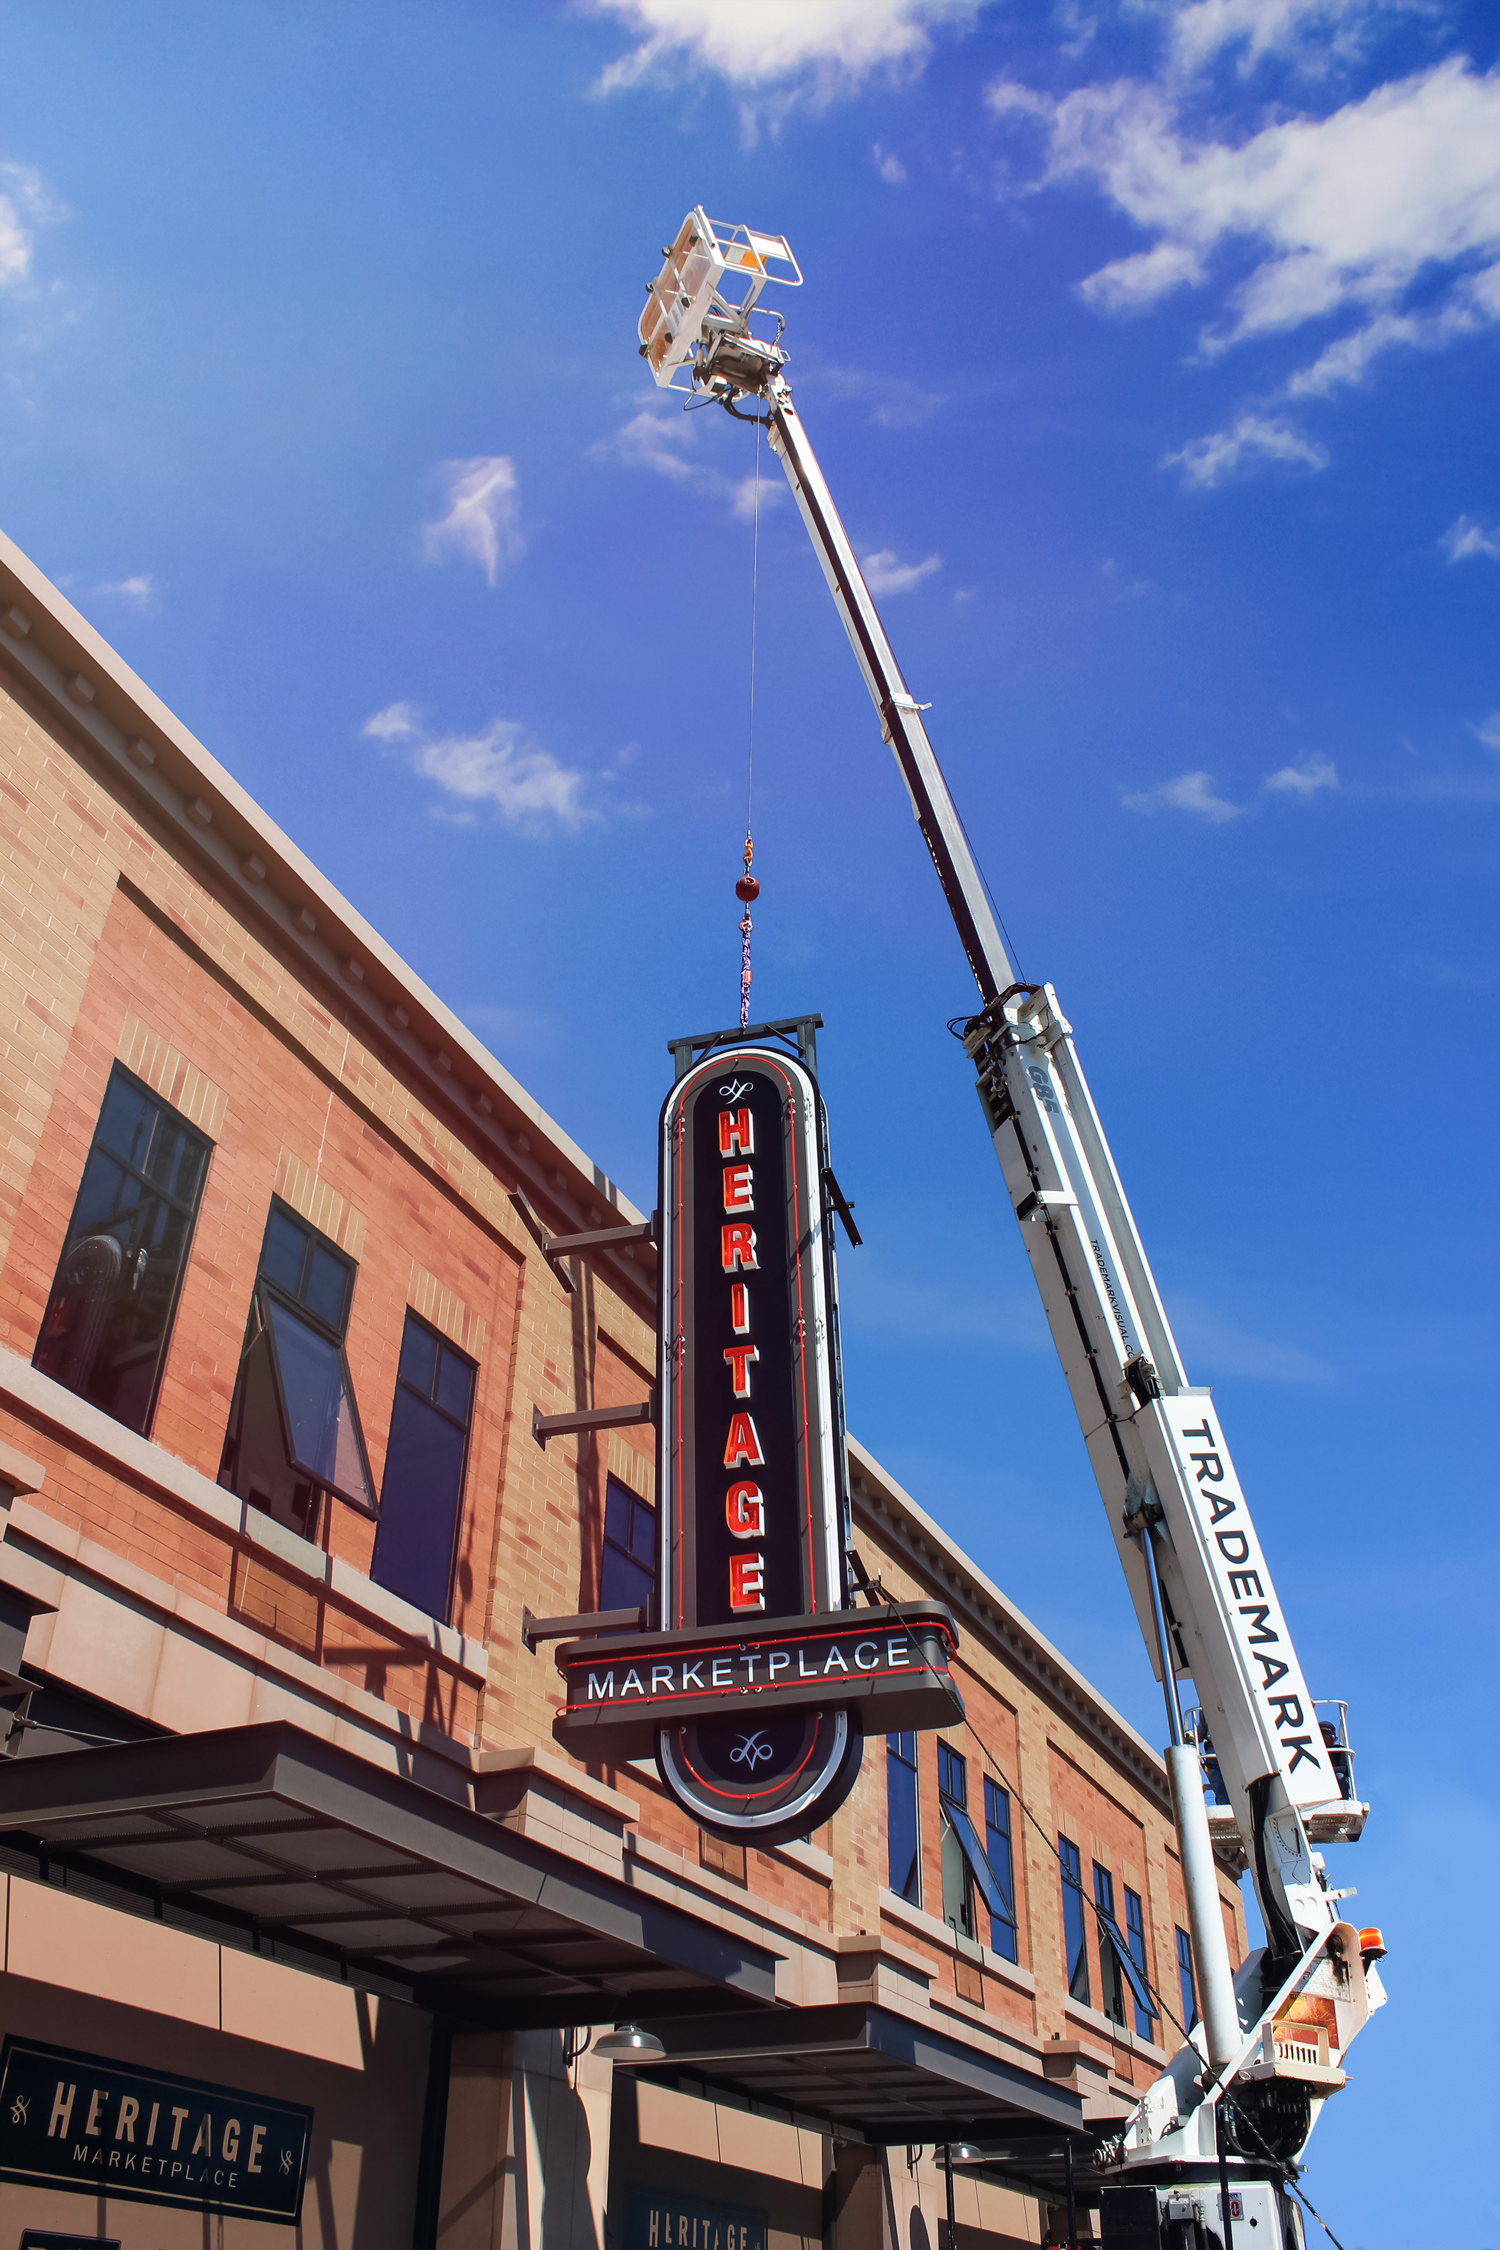 Trademark's crane is proudly installing the illuminated blade sign.